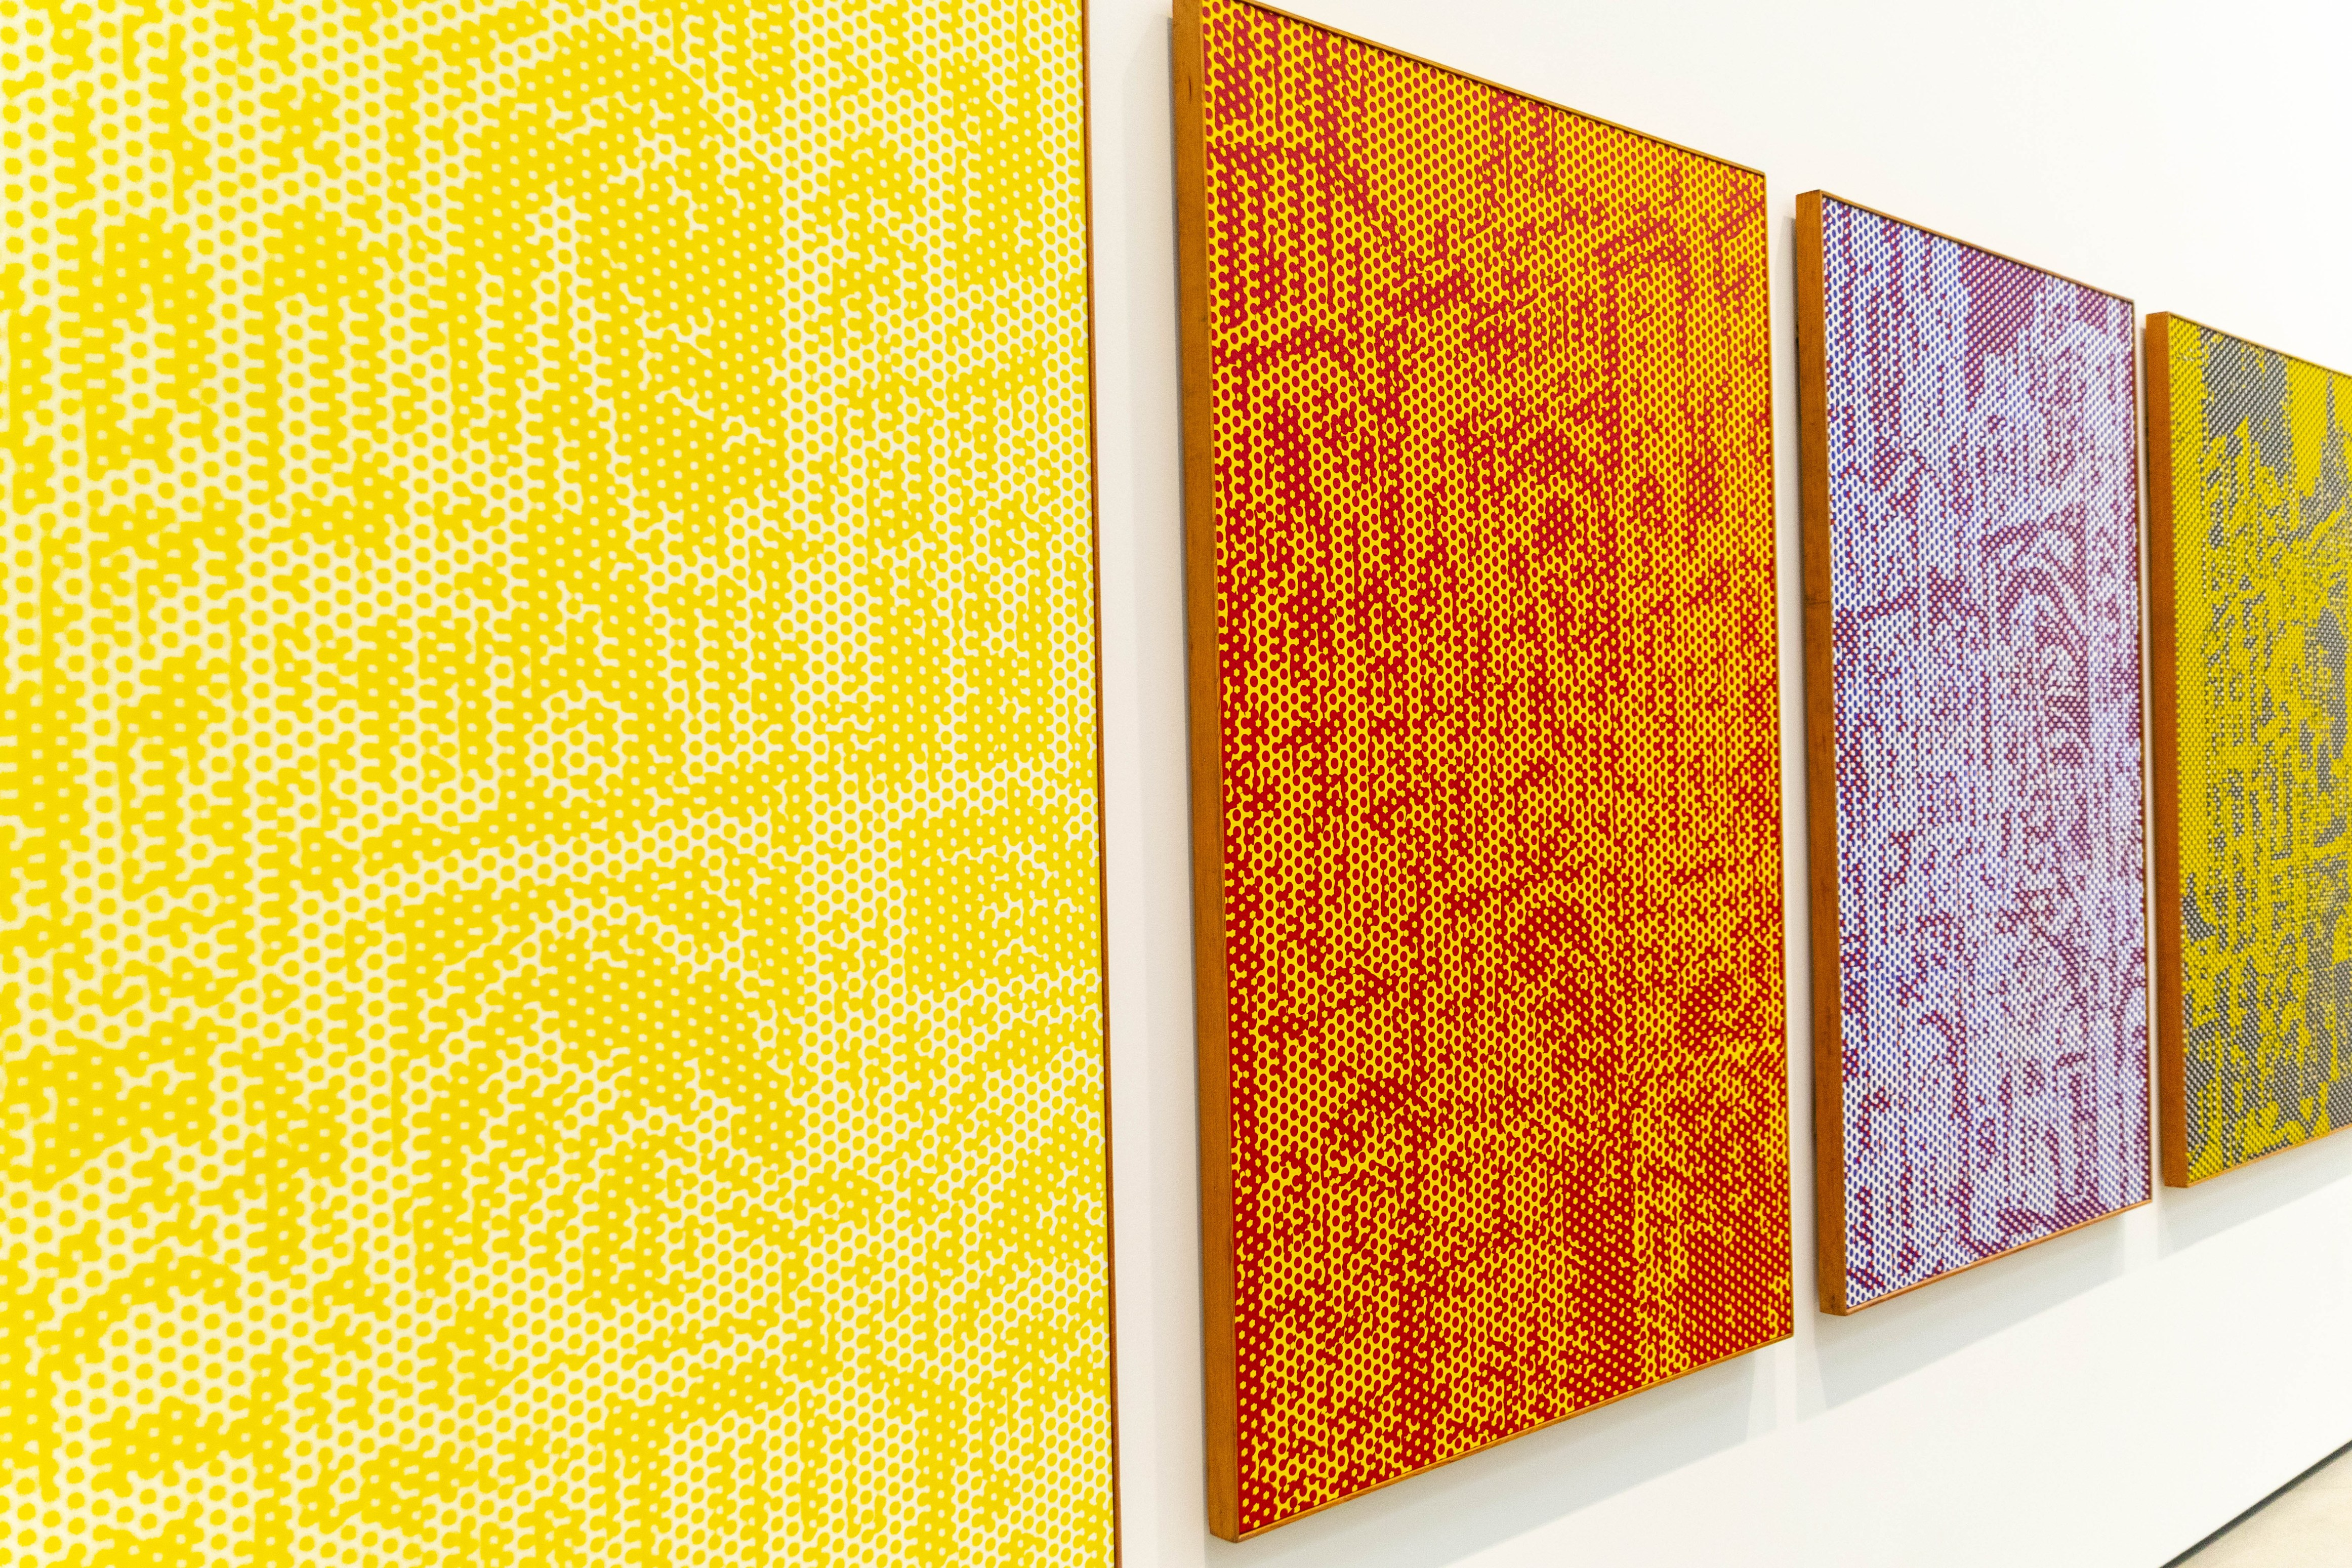 Roman Cathedrals by Roy Lichtenstein at The Broad Museum in Los Angeles